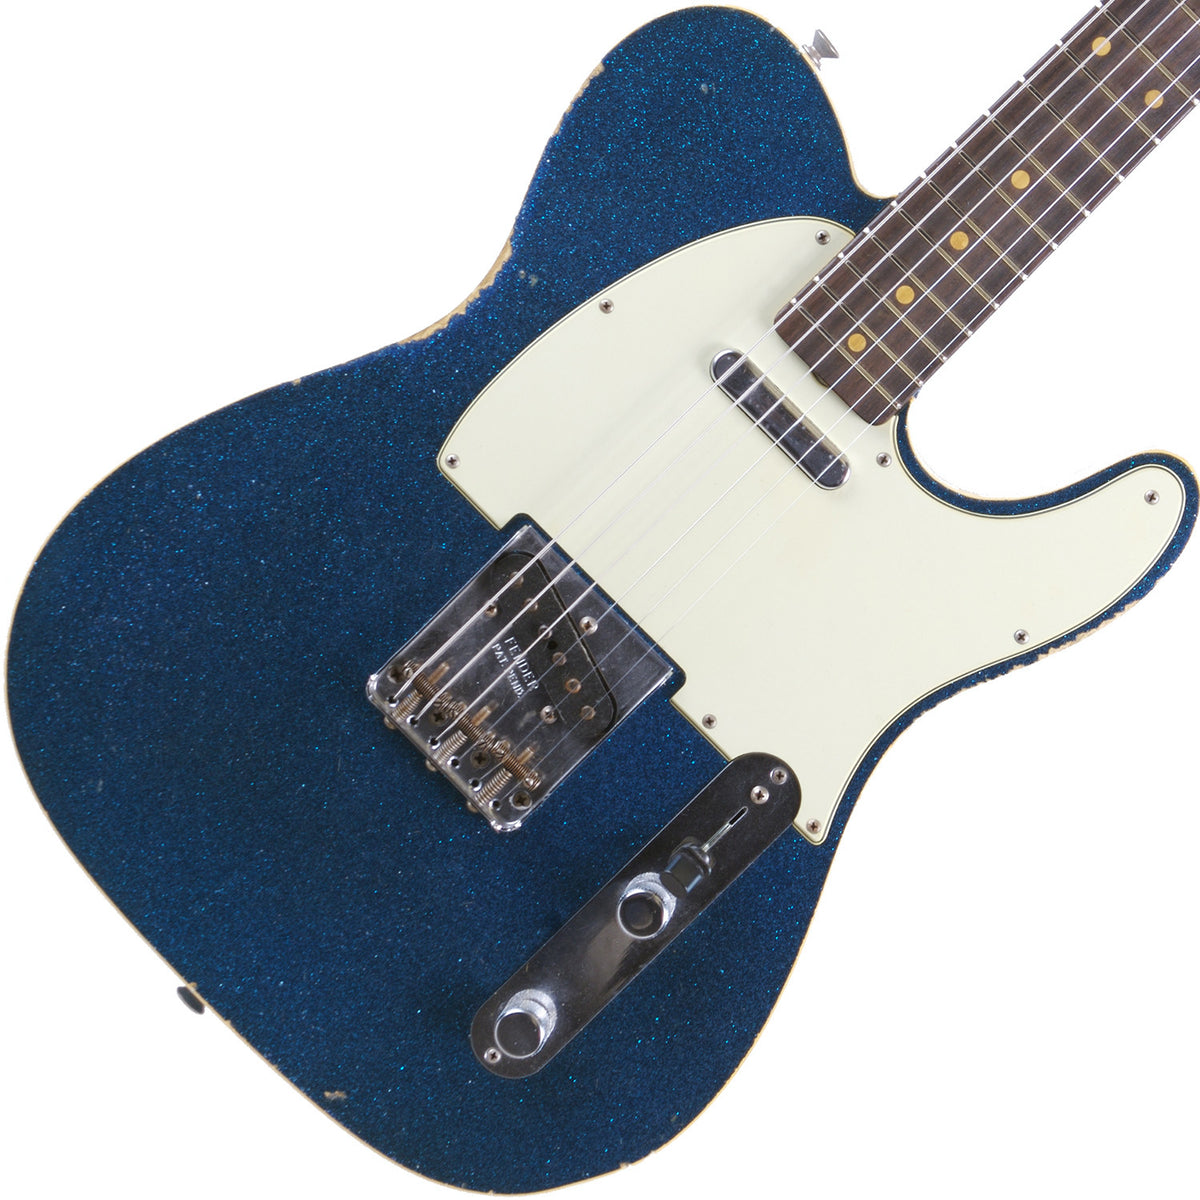 Fender Custom Shop Blue Sparkle '60 Telecaster Custom Relic - Garrett Park Guitars  - 1